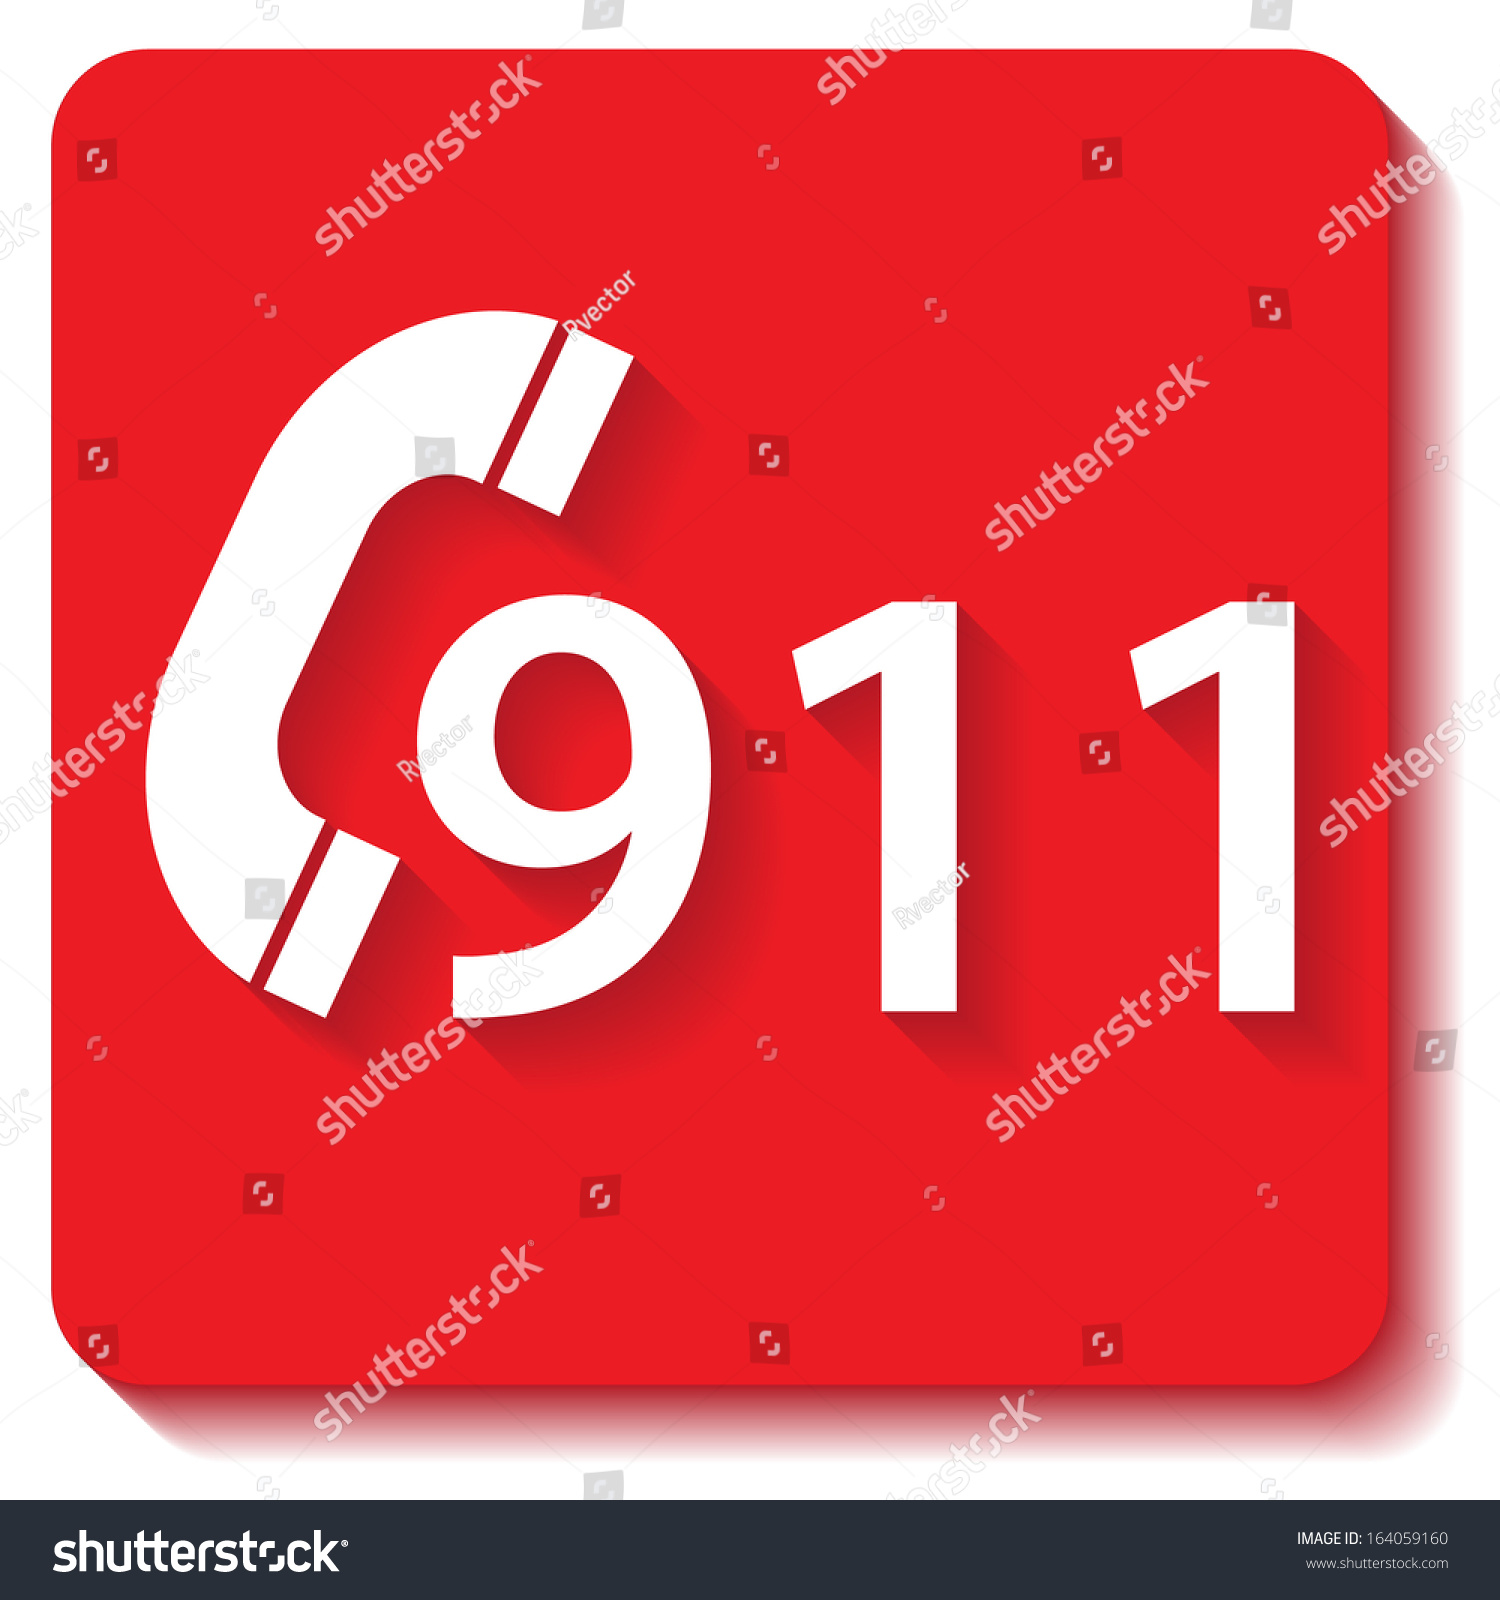 911 Emergency Call Stock Vector